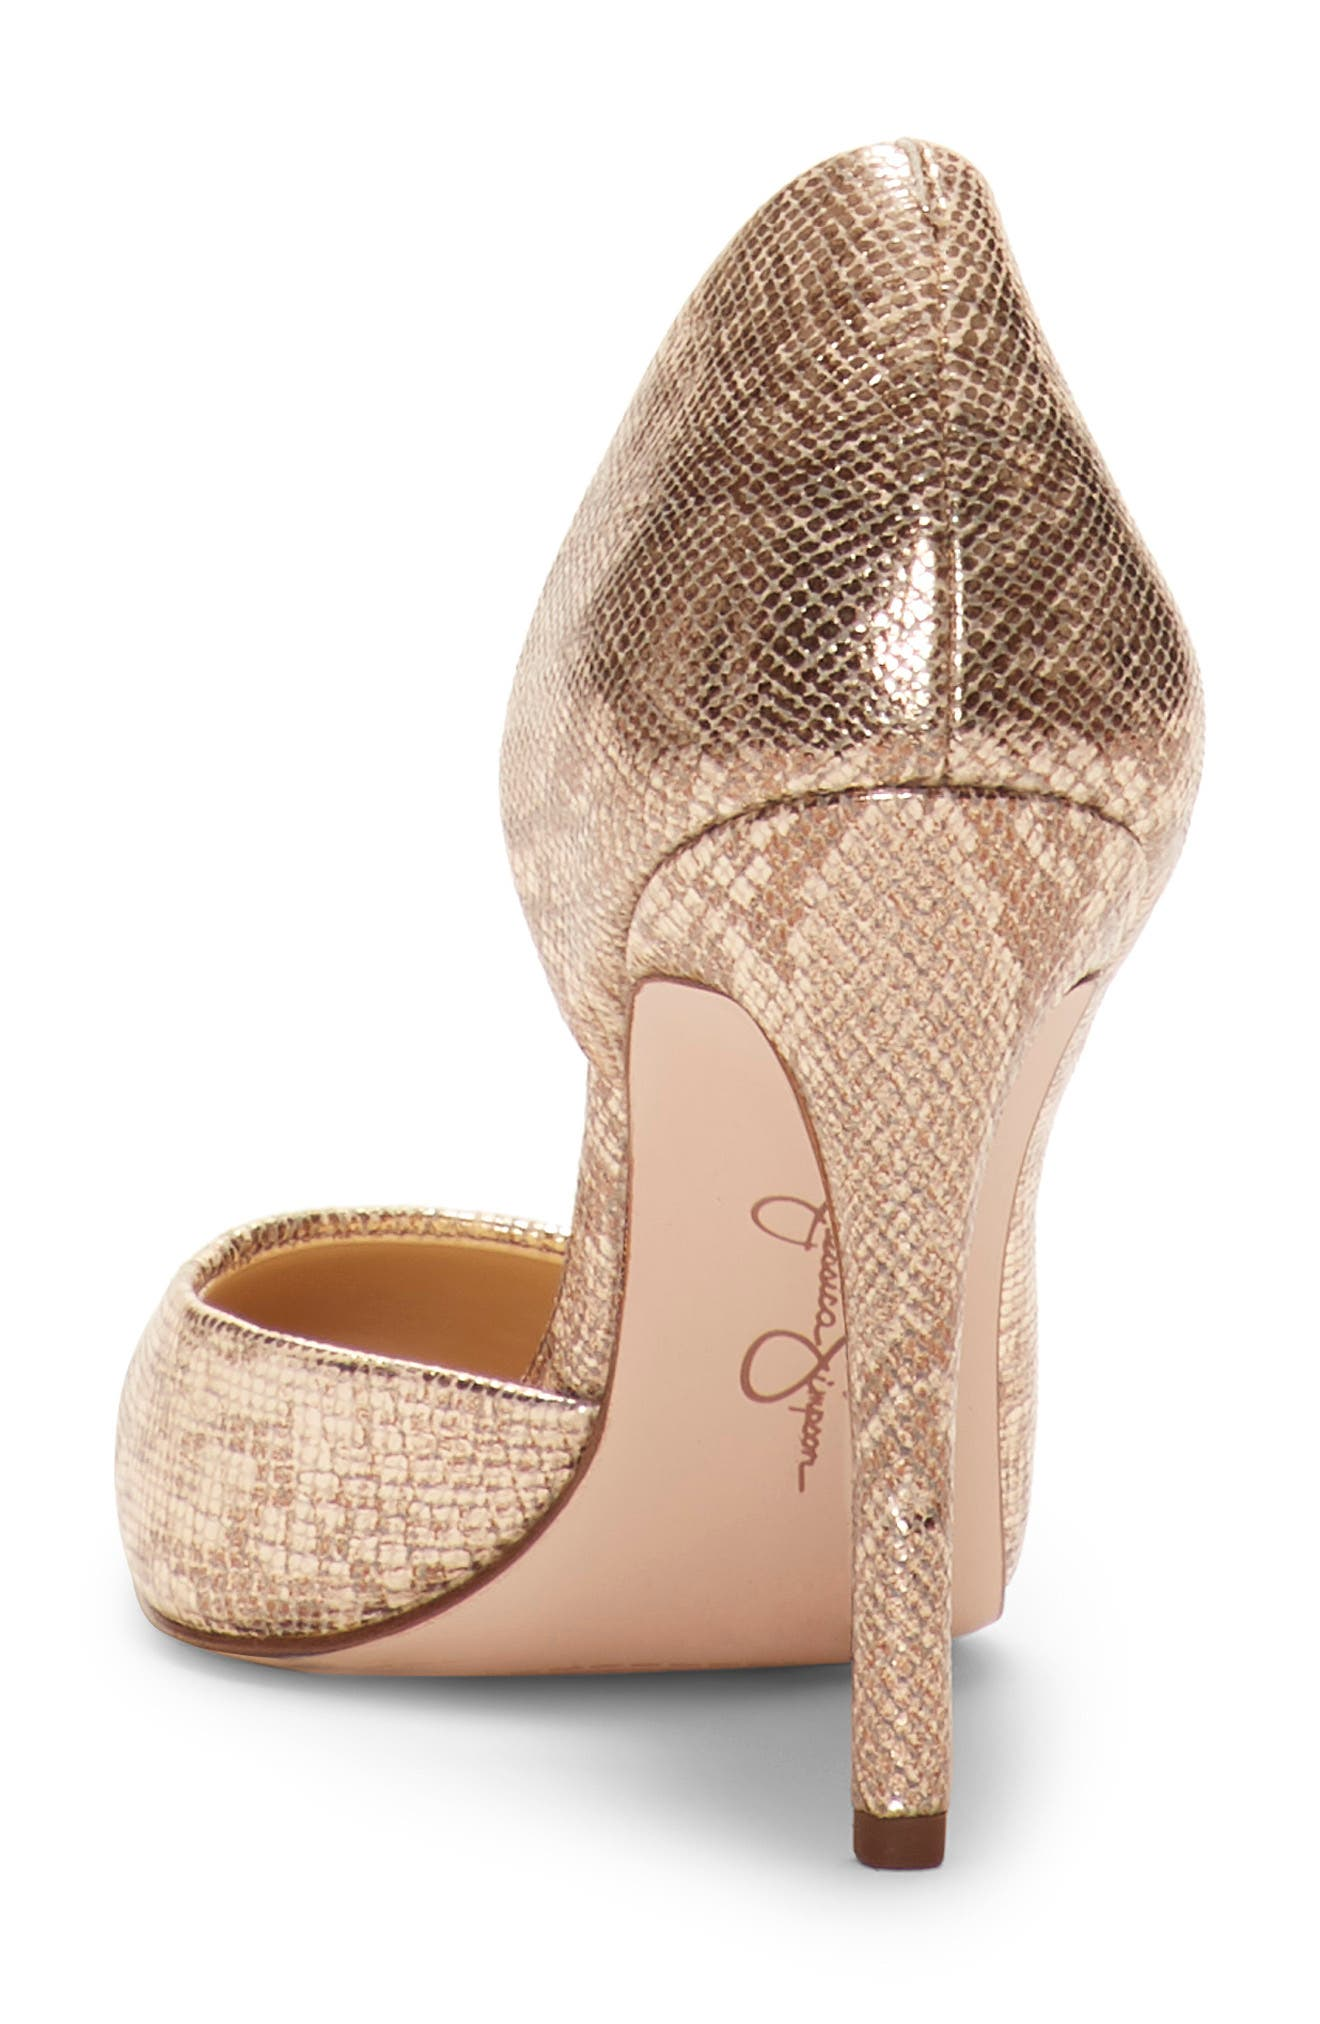 JESSICA SIMPSON,                             Pheona Pump,                             Alternate thumbnail 6, color,                             KARAT GOLD